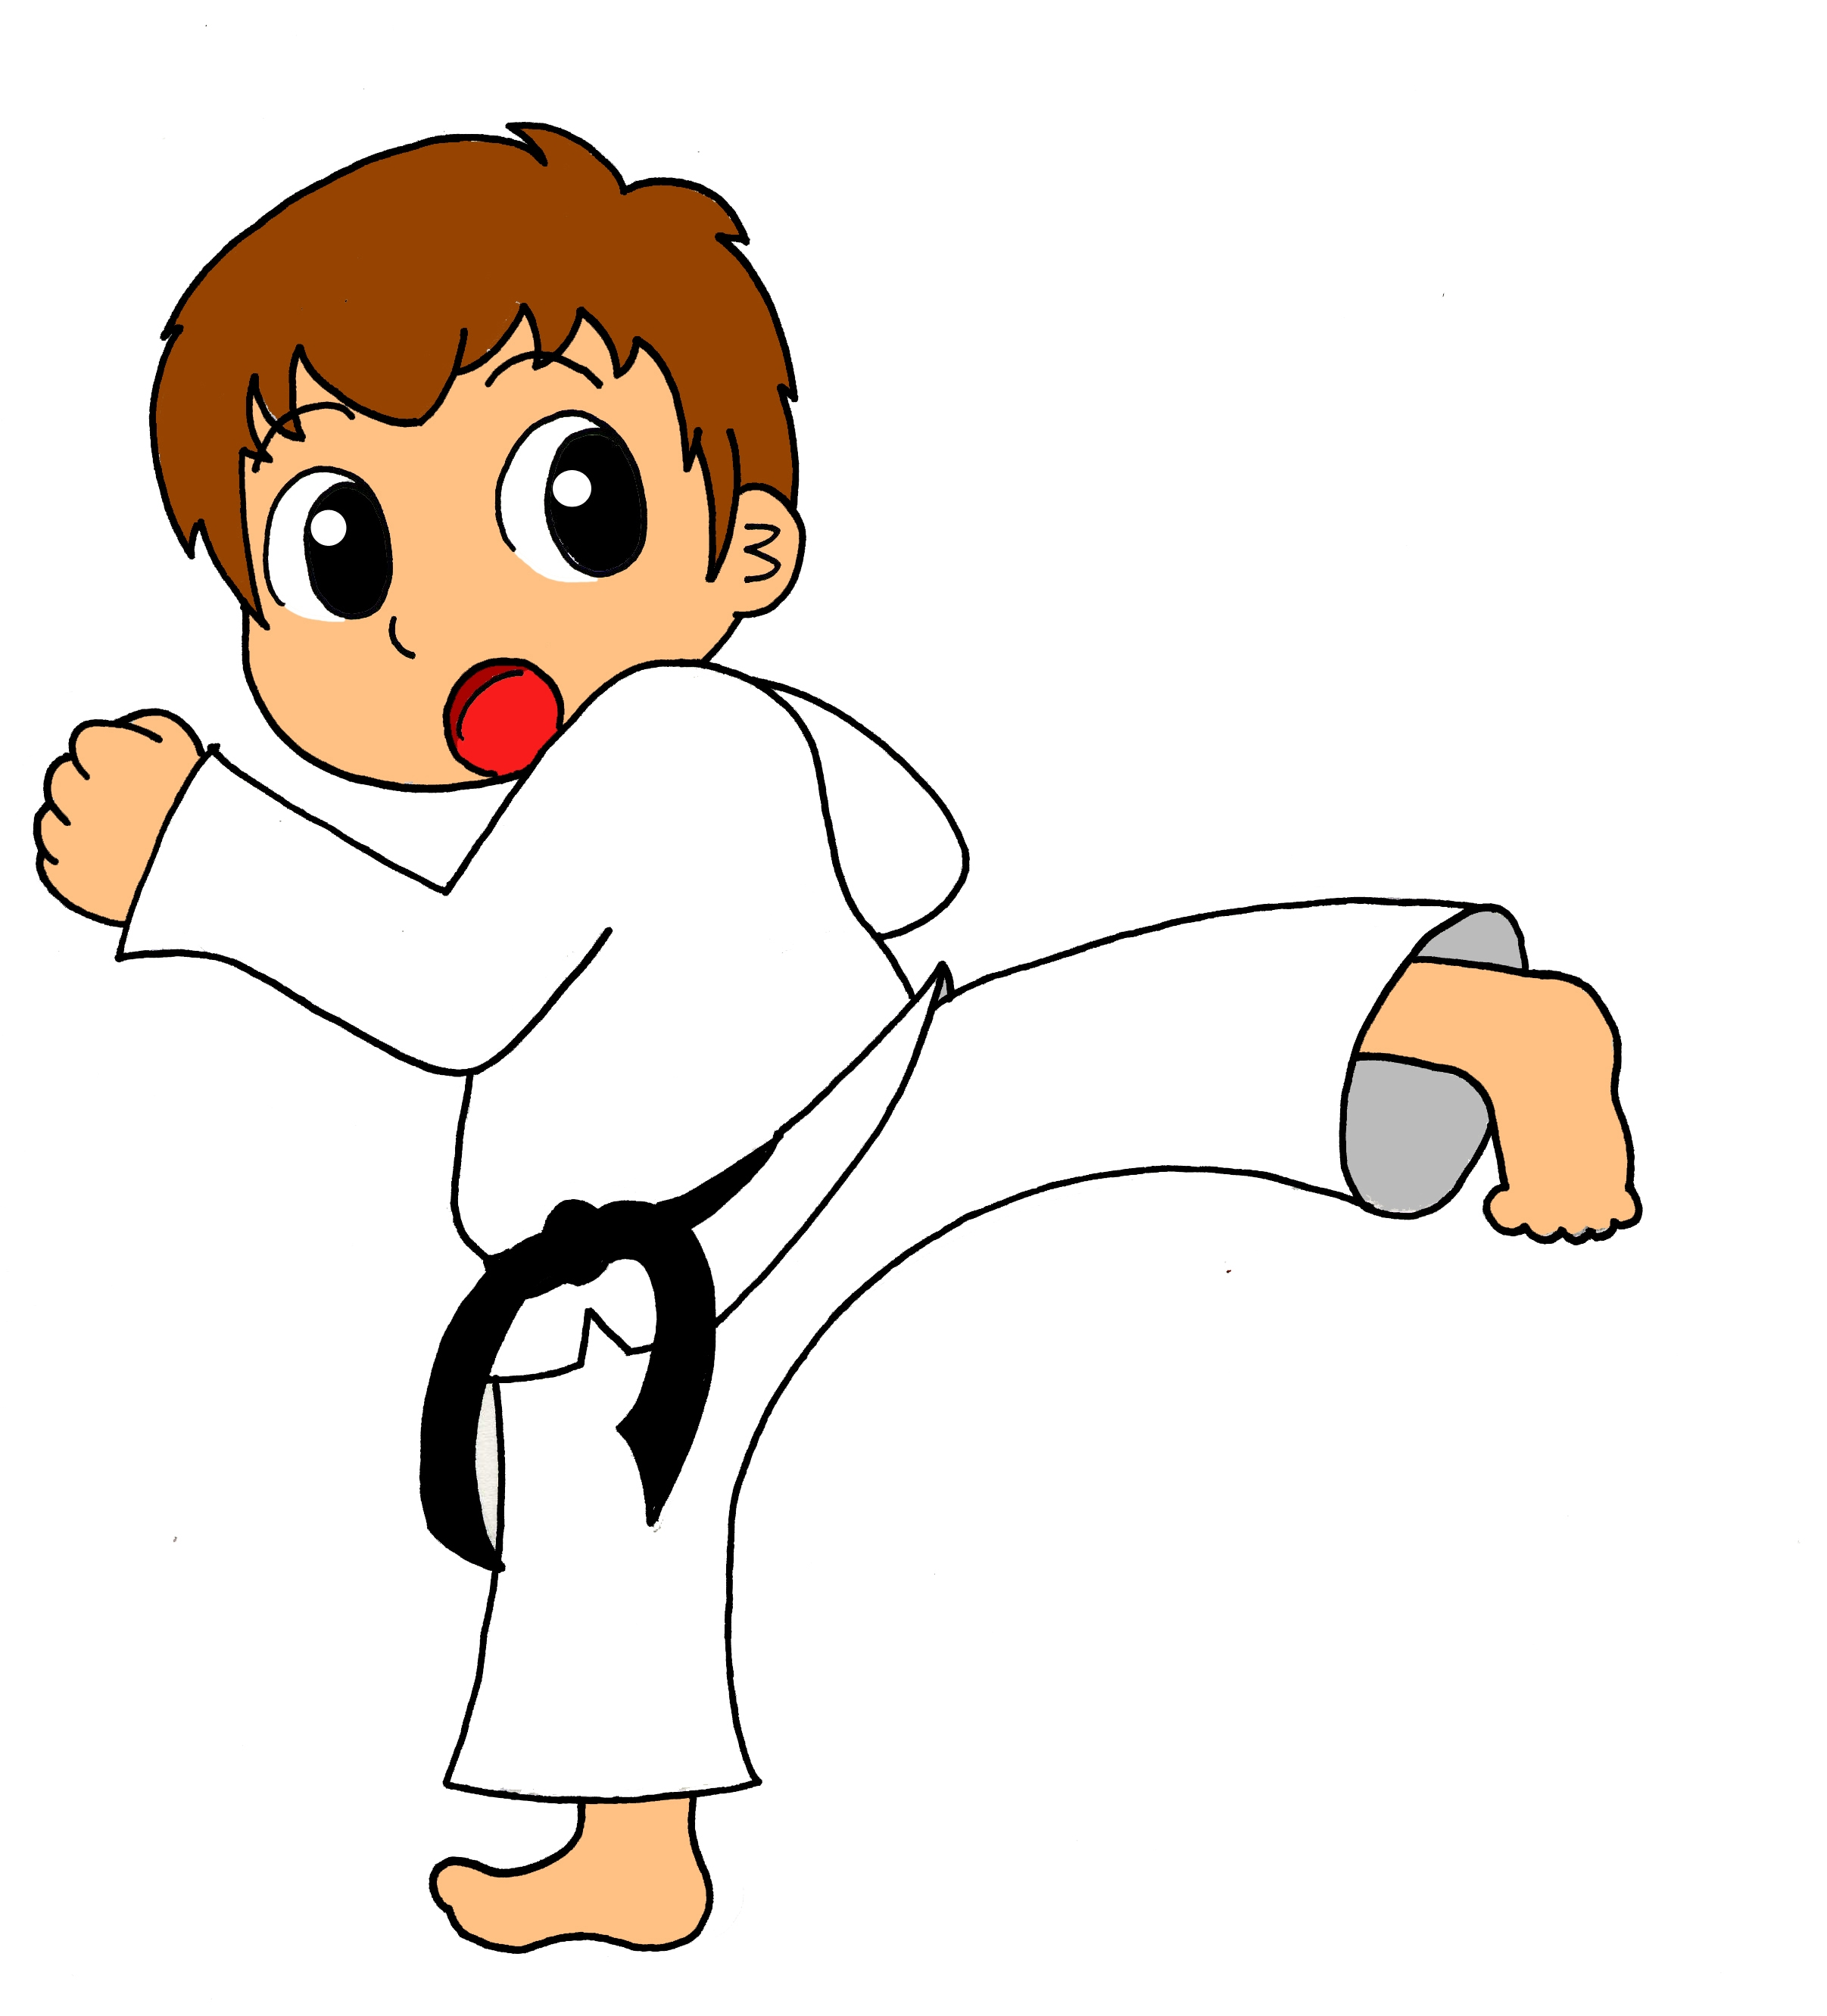 clipart karate at getdrawings com free for personal use clipart rh getdrawings com karate clip art border images karate clip art silhouette